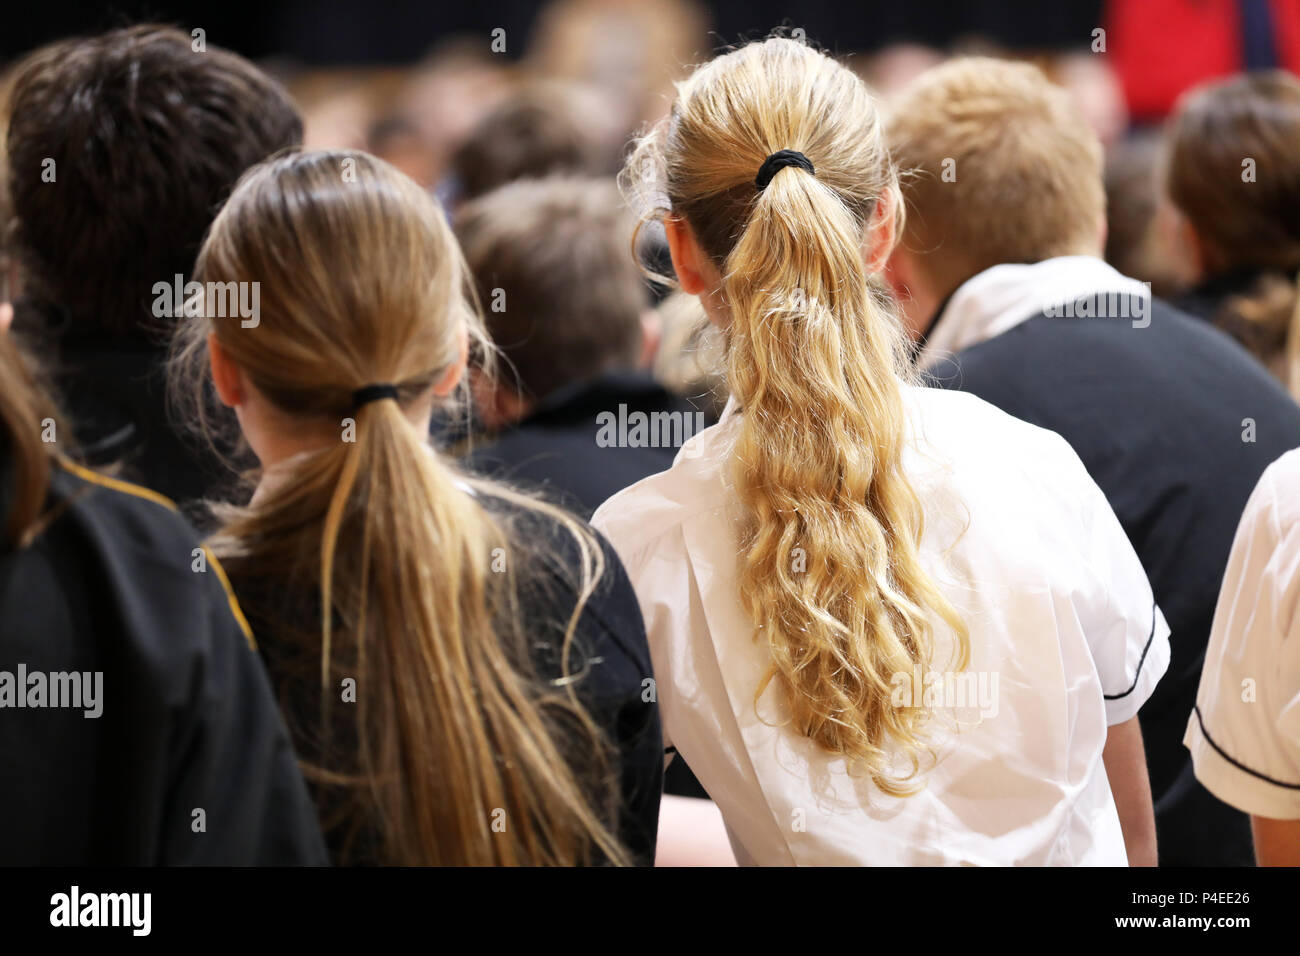 high school teenage students boys and girls in uniform sitting listening at assembly or presentation. Teaching, learning, teacher, education education - Stock Image